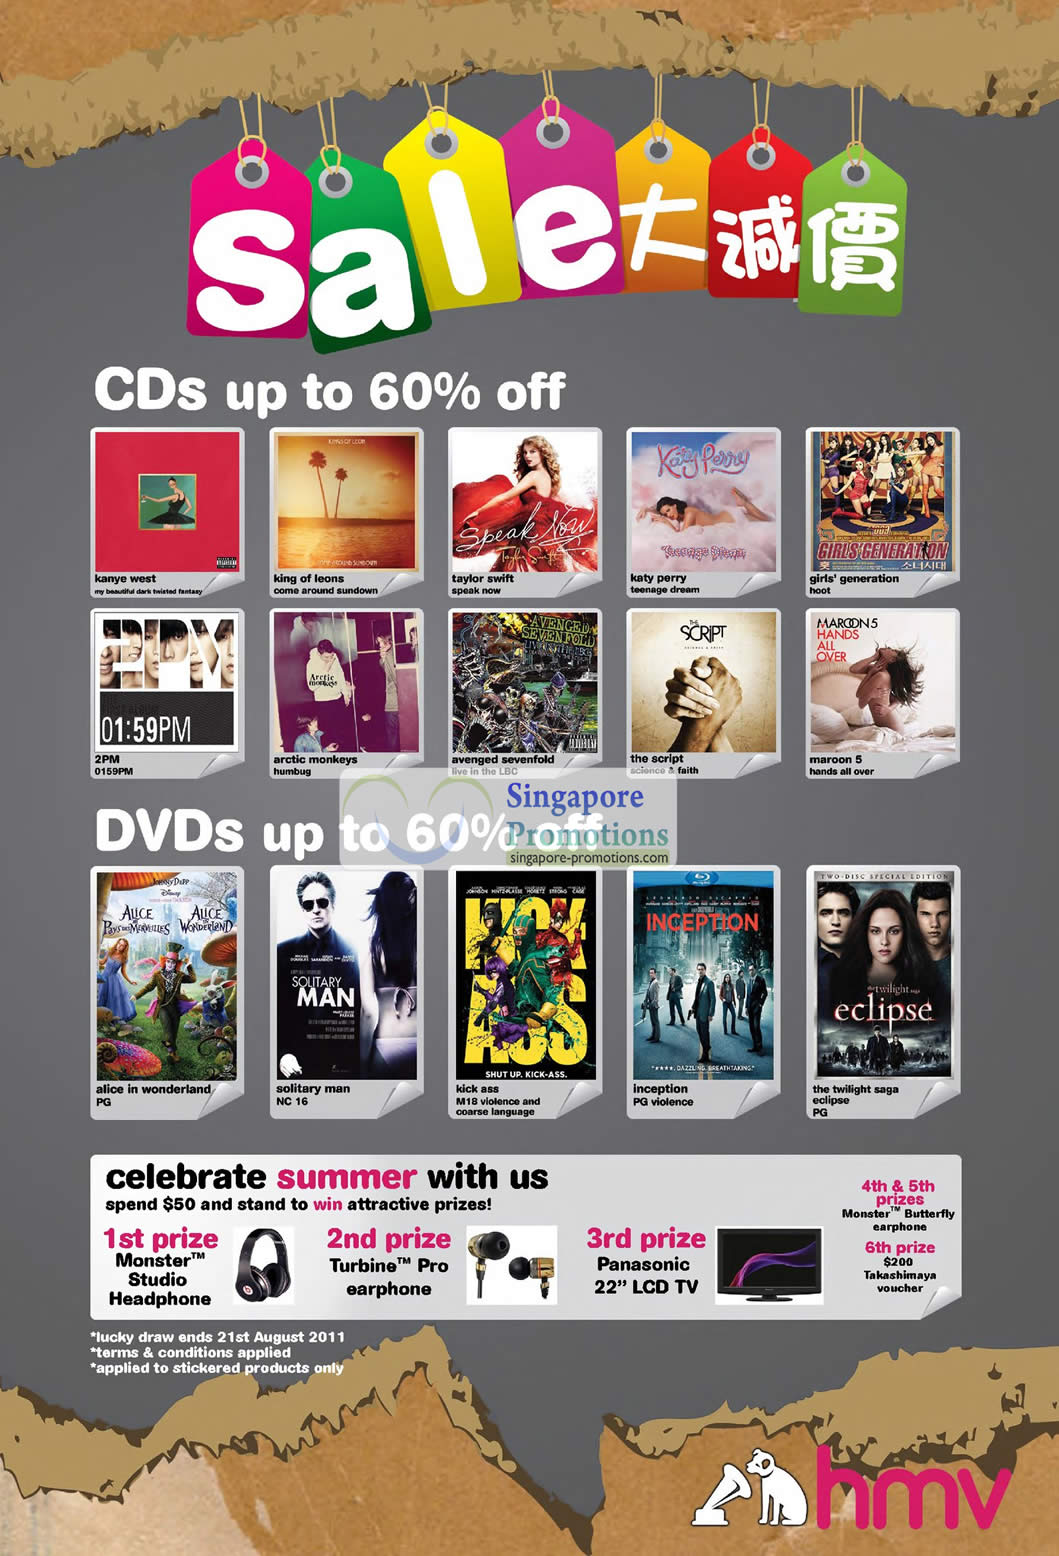 Movies CDs, DVDs, Up To 60 Percent Off, Lucky Draw